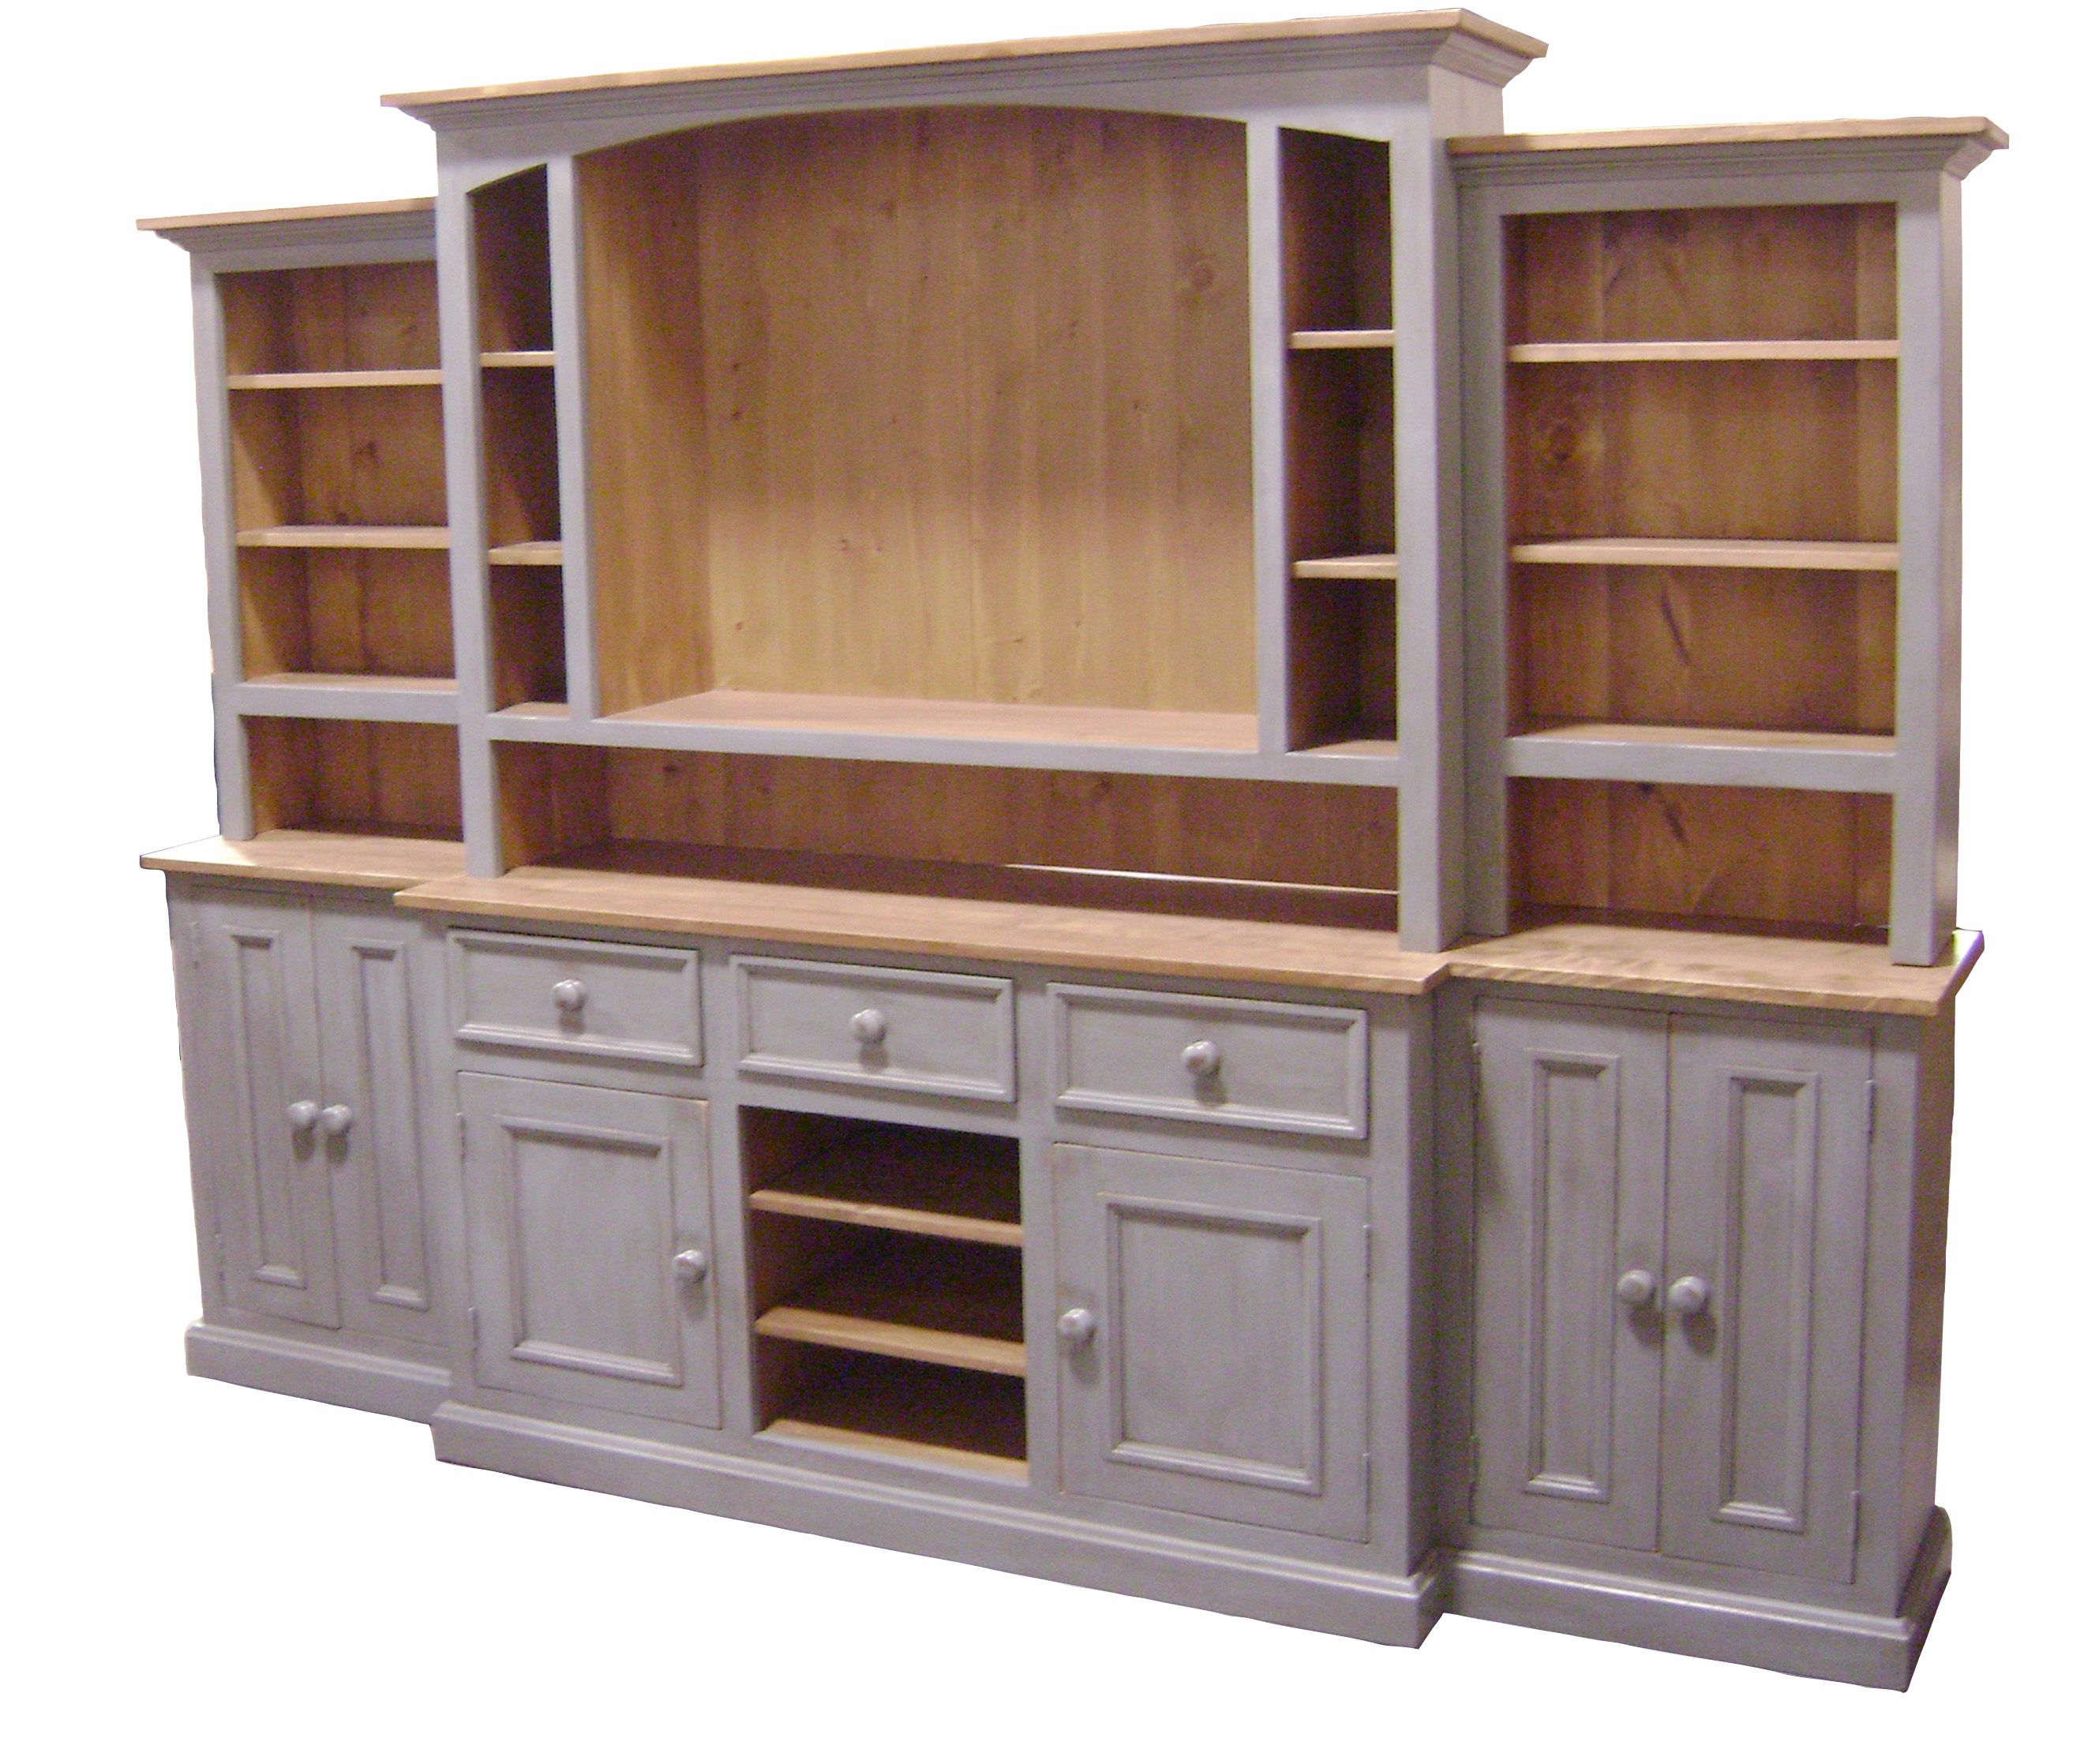 Wall Unit Wooden Coastal Grey This Beautiful Solid Wood Country French